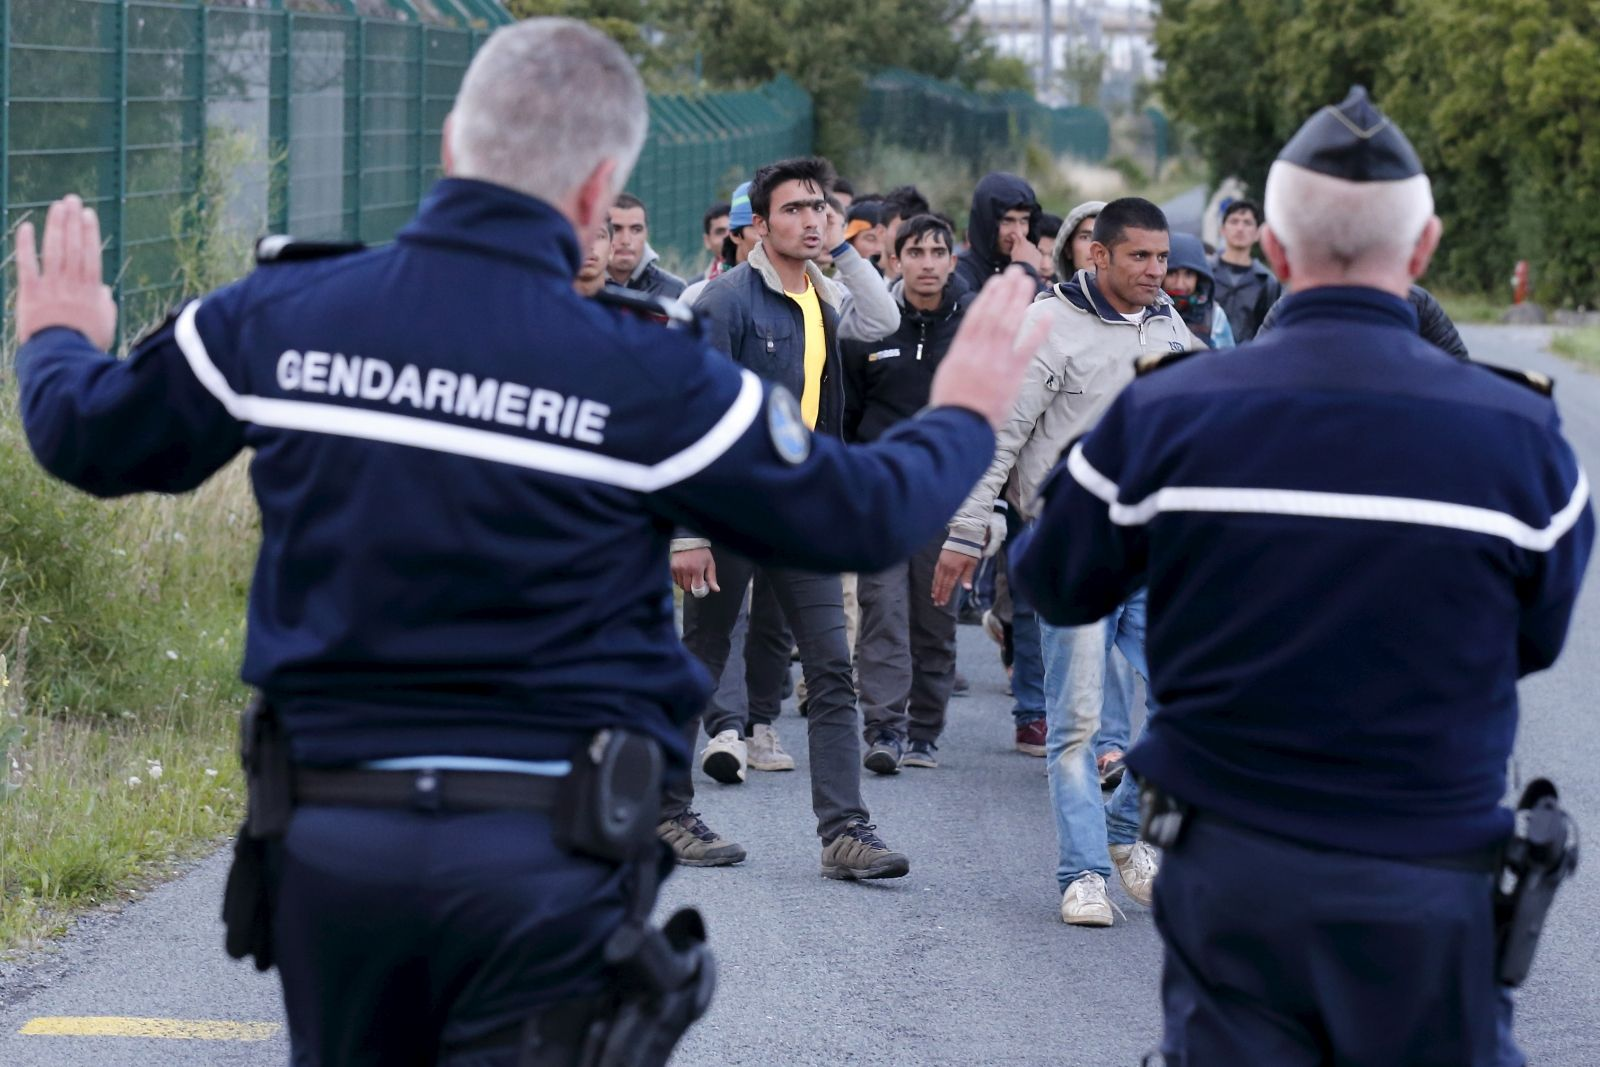 EU helps with Calais migrant crisis